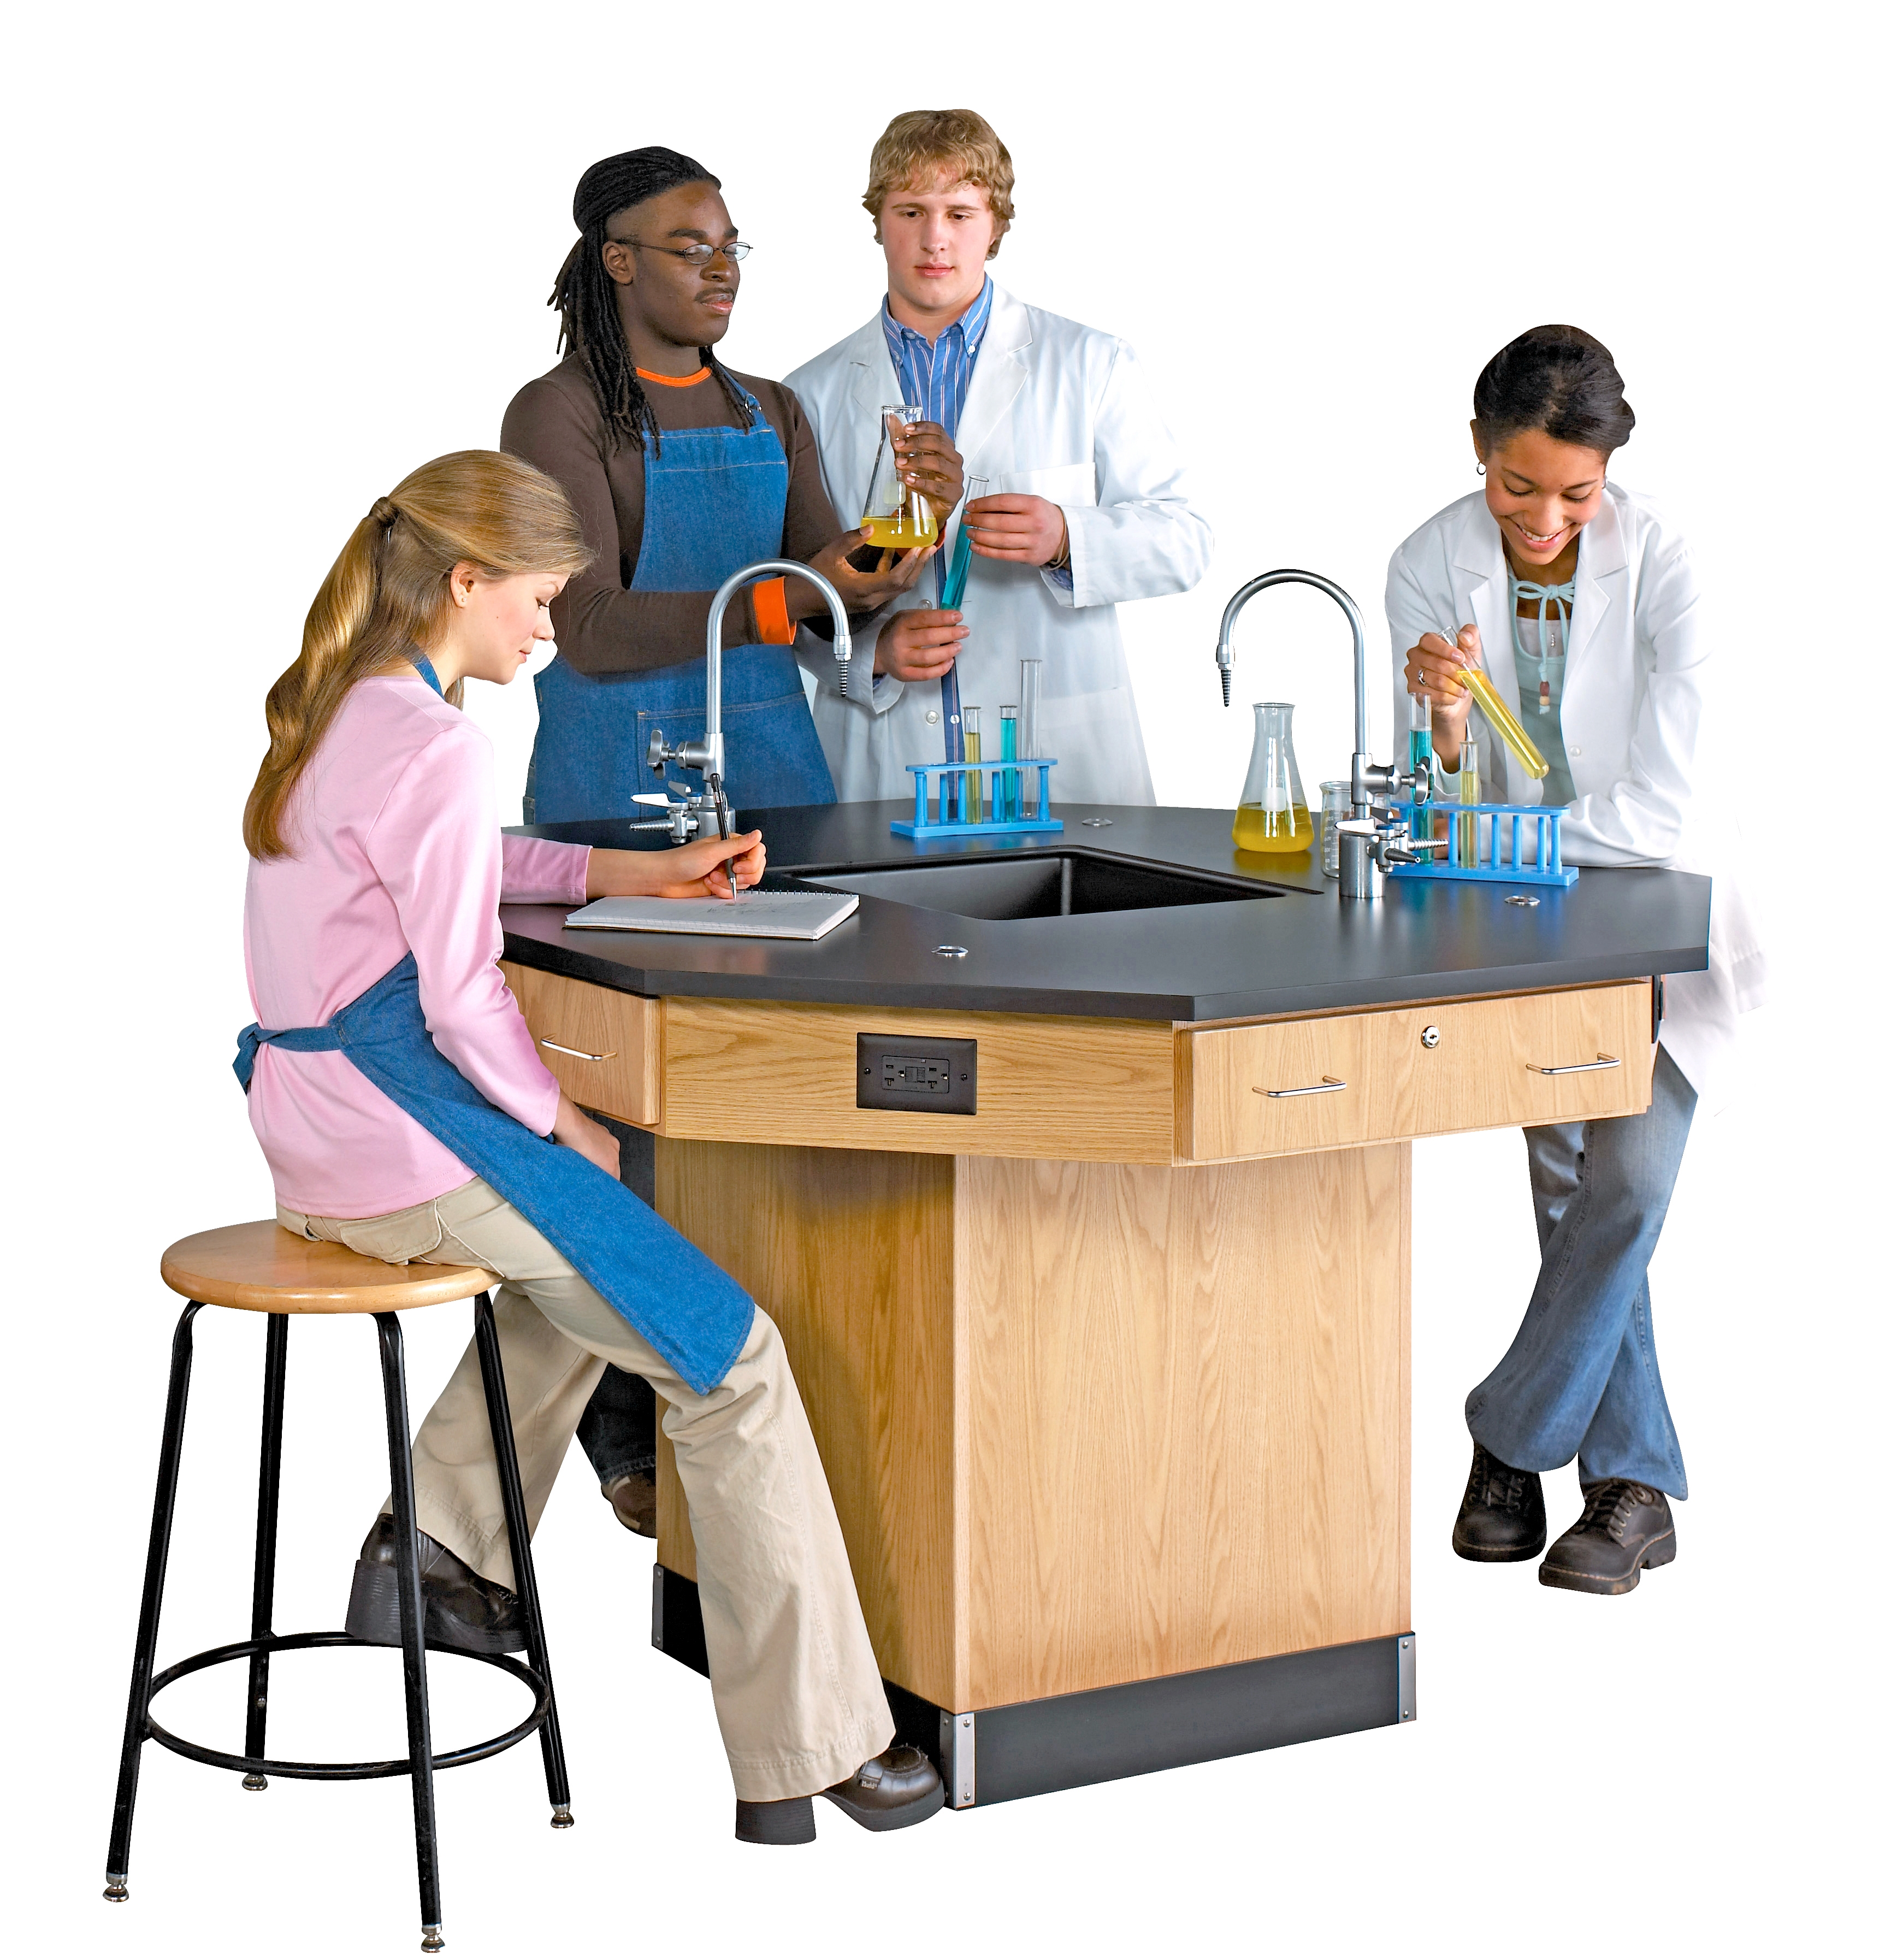 Diversified Woodcrafts Octagon Workstation with Pedestal Base & Fixtures - Phenolic Top